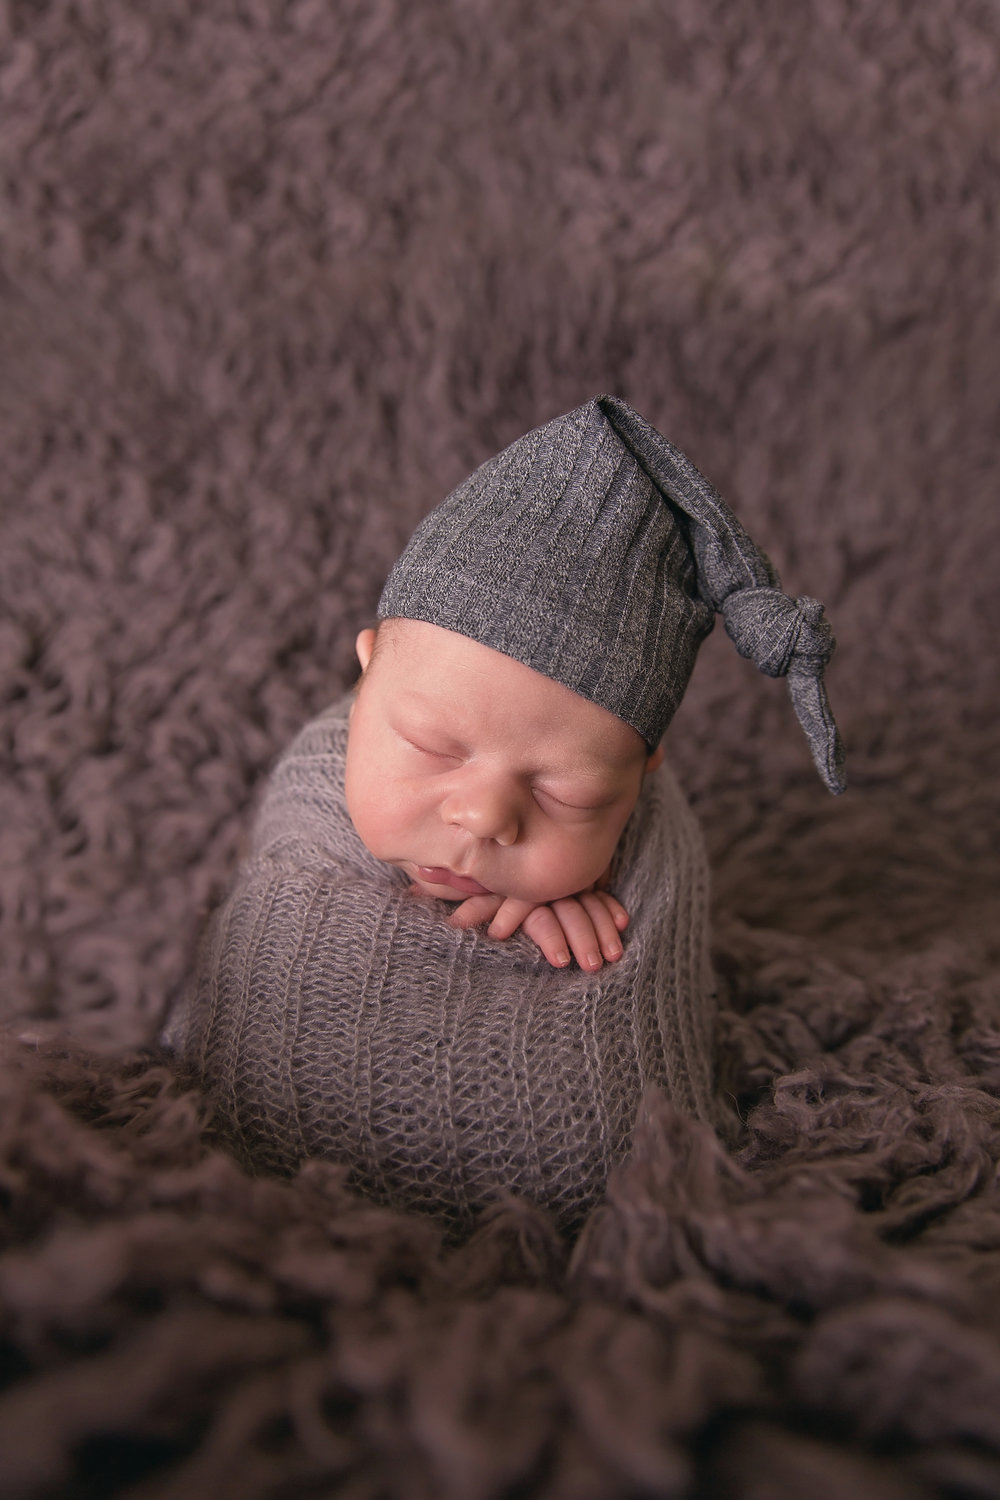 Caleb-3weeks-23edit.jpg